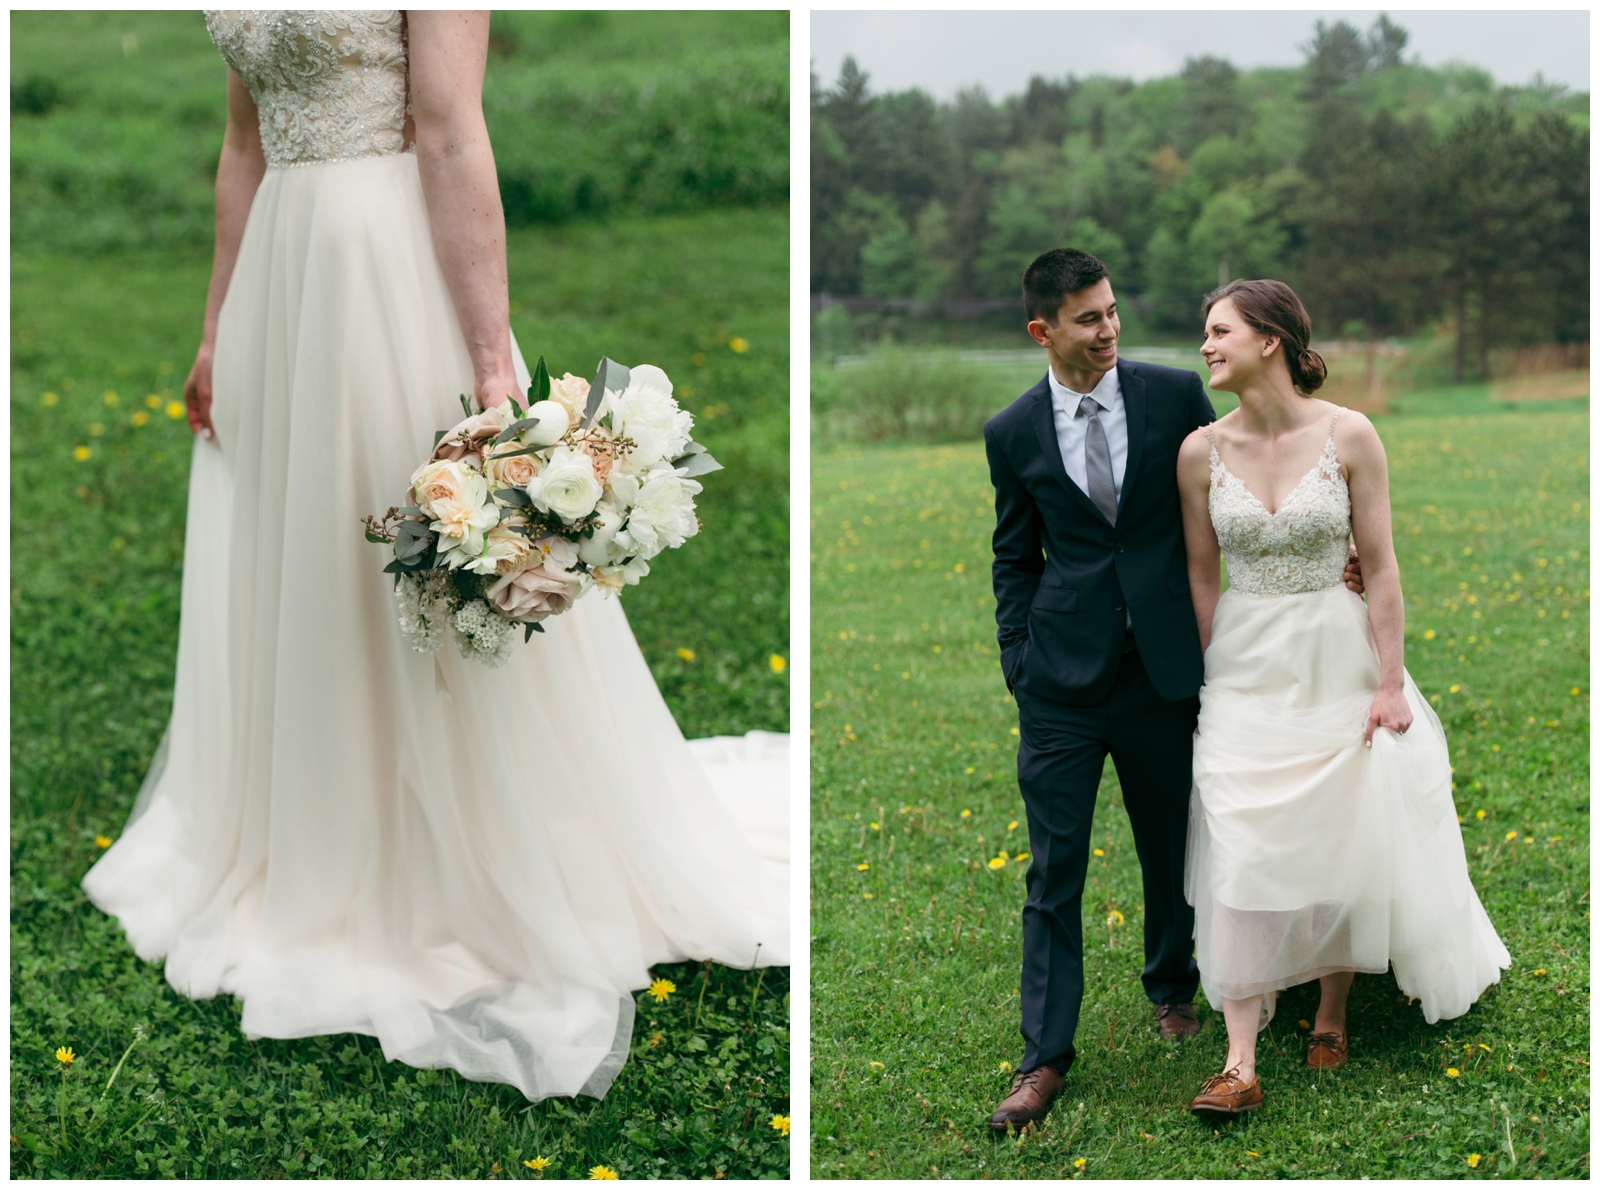 Vermont-Elopement-Topnotch-Stowe-Wedding-Bailey-Q-Photo-Boston-Wedding-Photographer-015.jpg